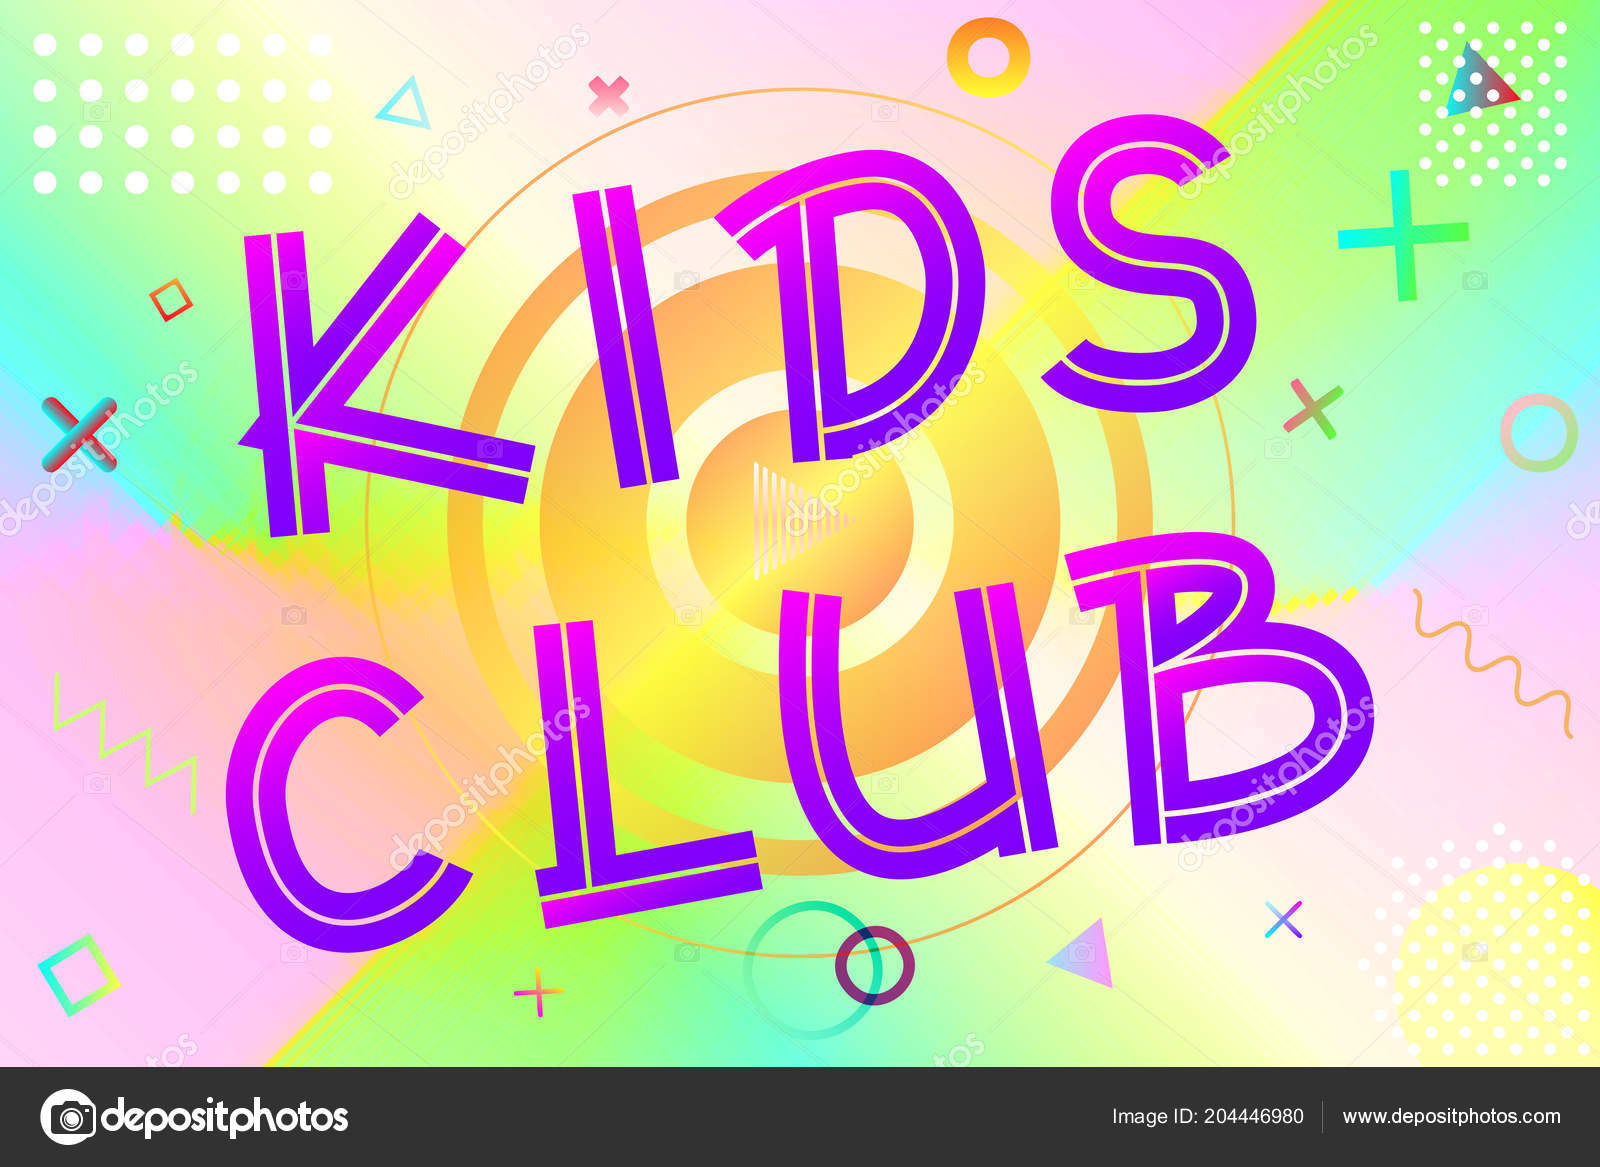 Kids Club Text Colorful Lettering Modern Gradient Bright Geometric